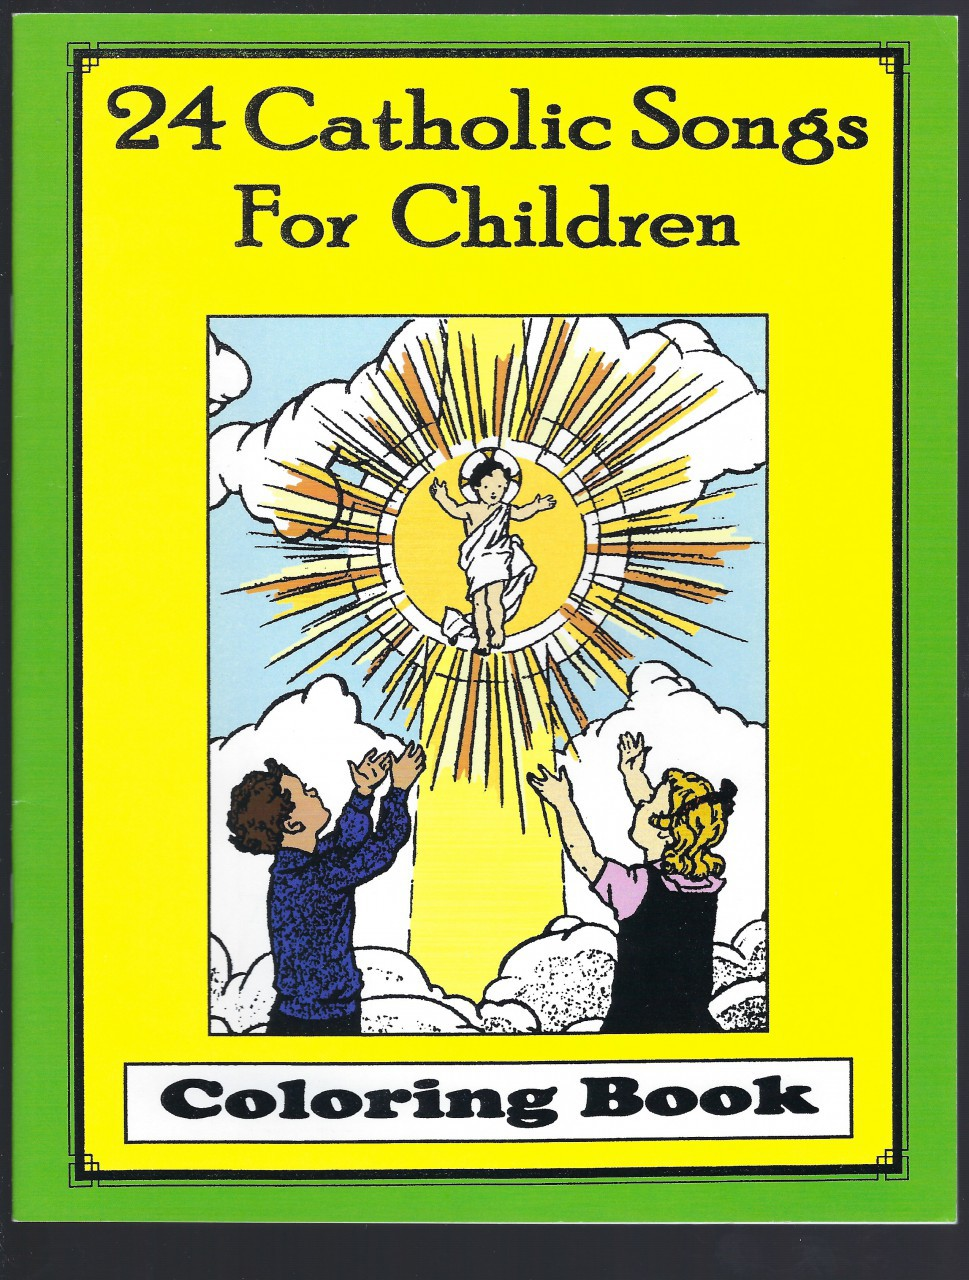 24 Catholic Songs For Children Coloring Book